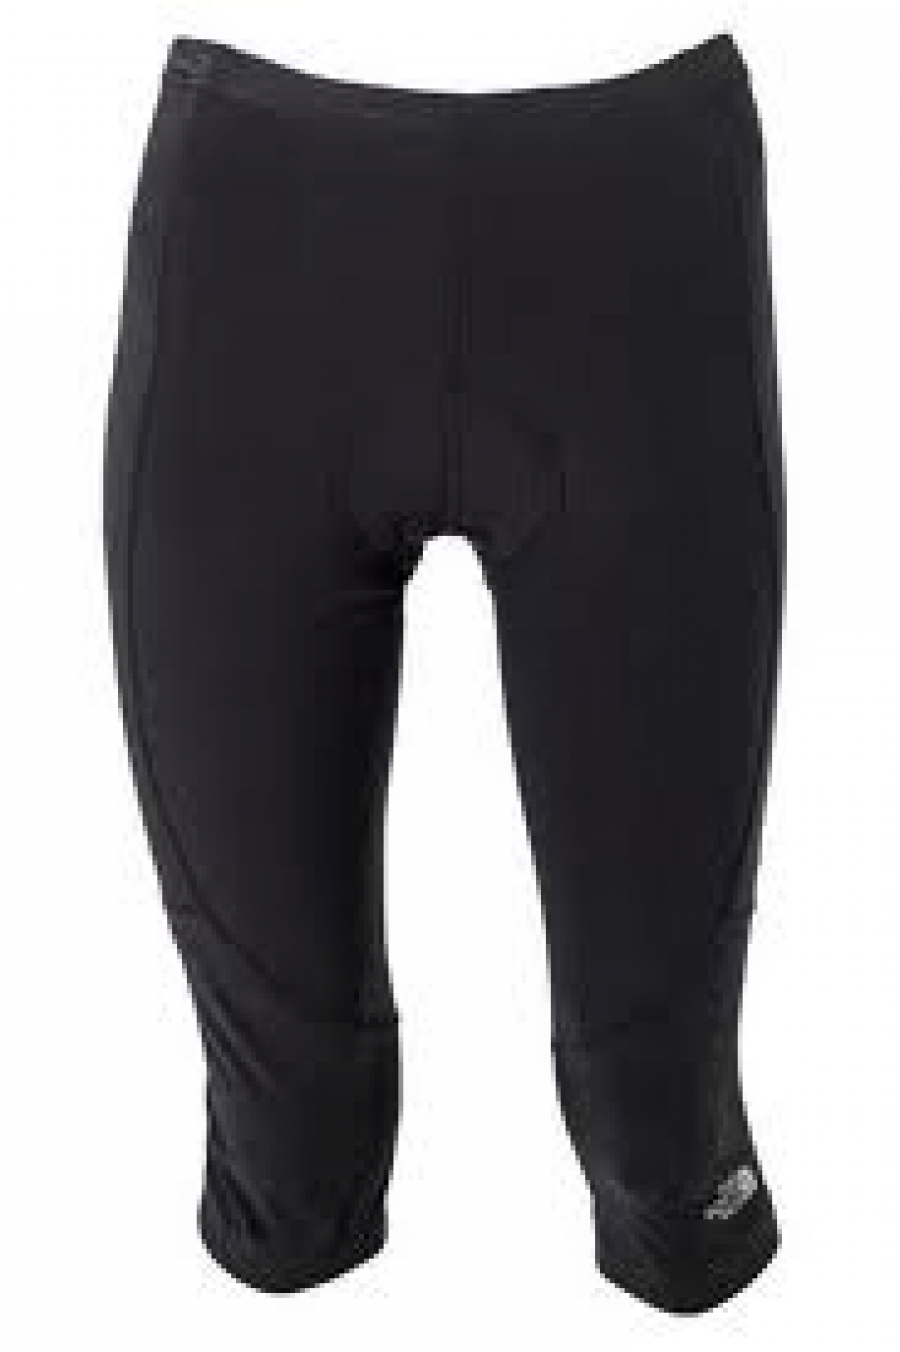 The North Face women's cycling tights